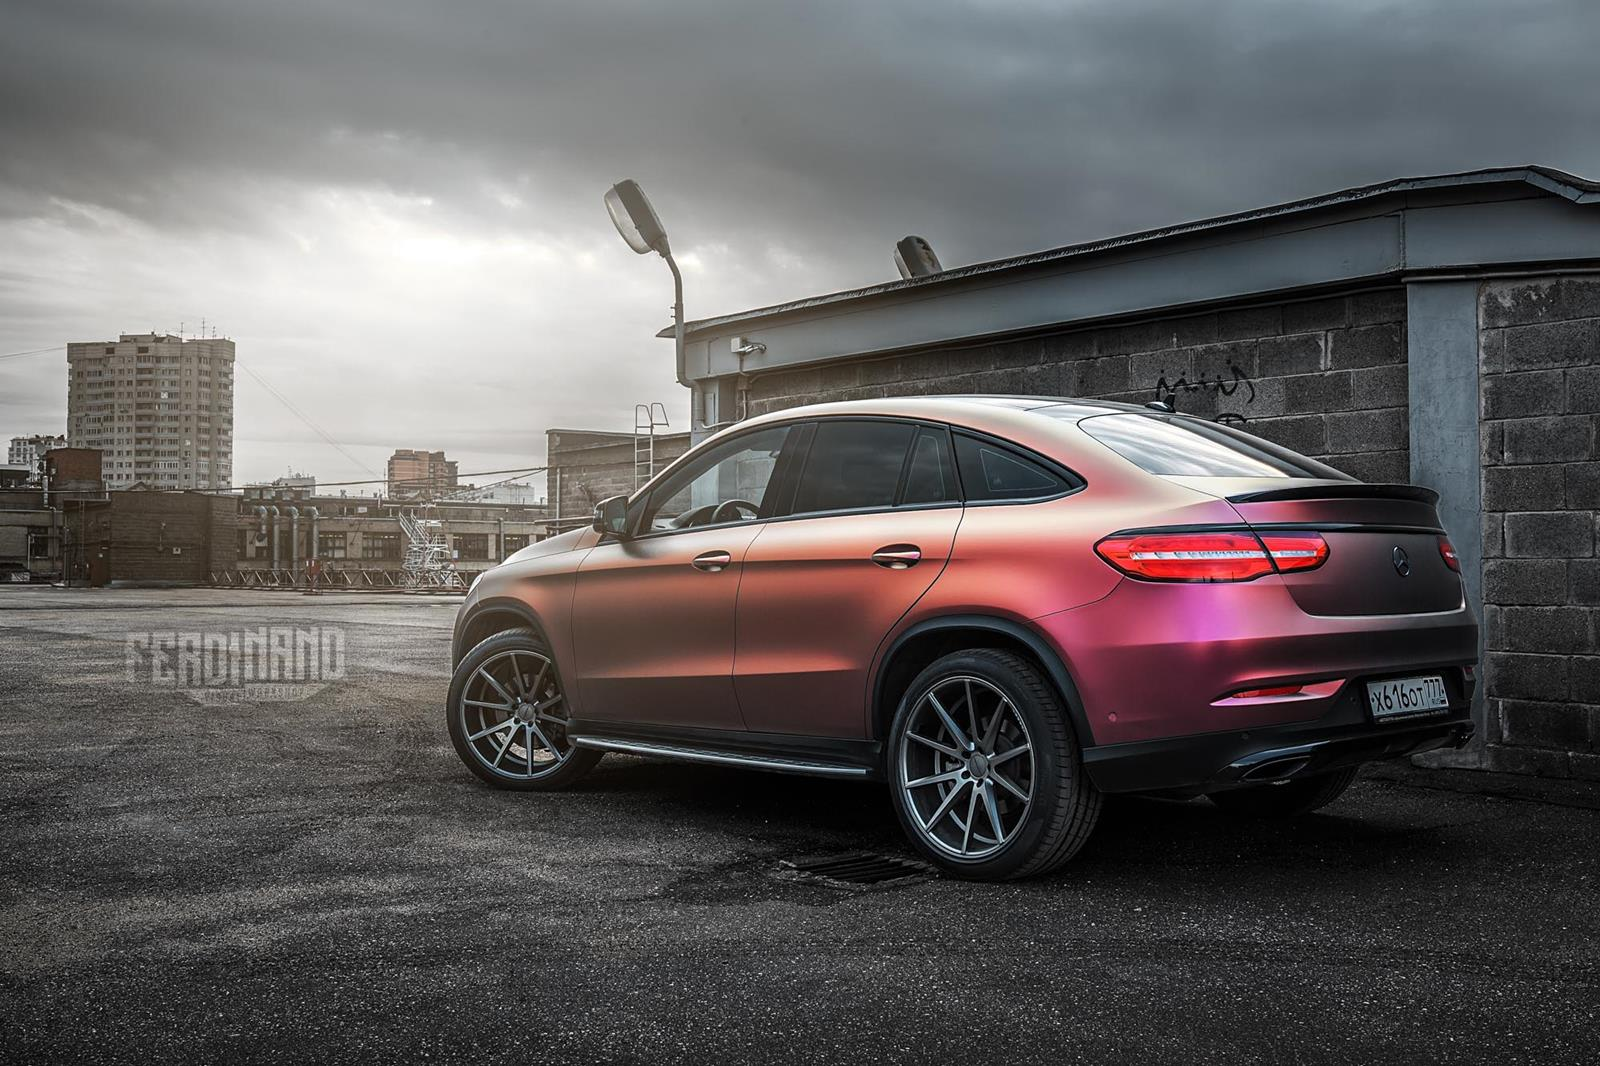 Mercedes benz w292 gle coupe vfs1 vossen wheels benztuning for Mercedes benz wheels rims